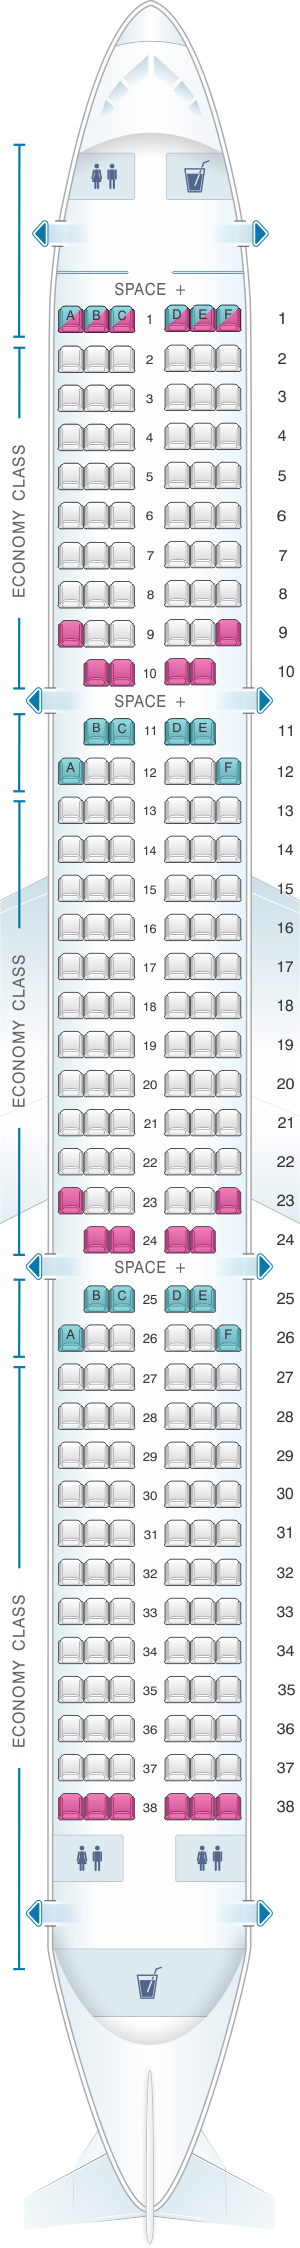 Seat map for LATAM Airlines Brasil Airbus A321